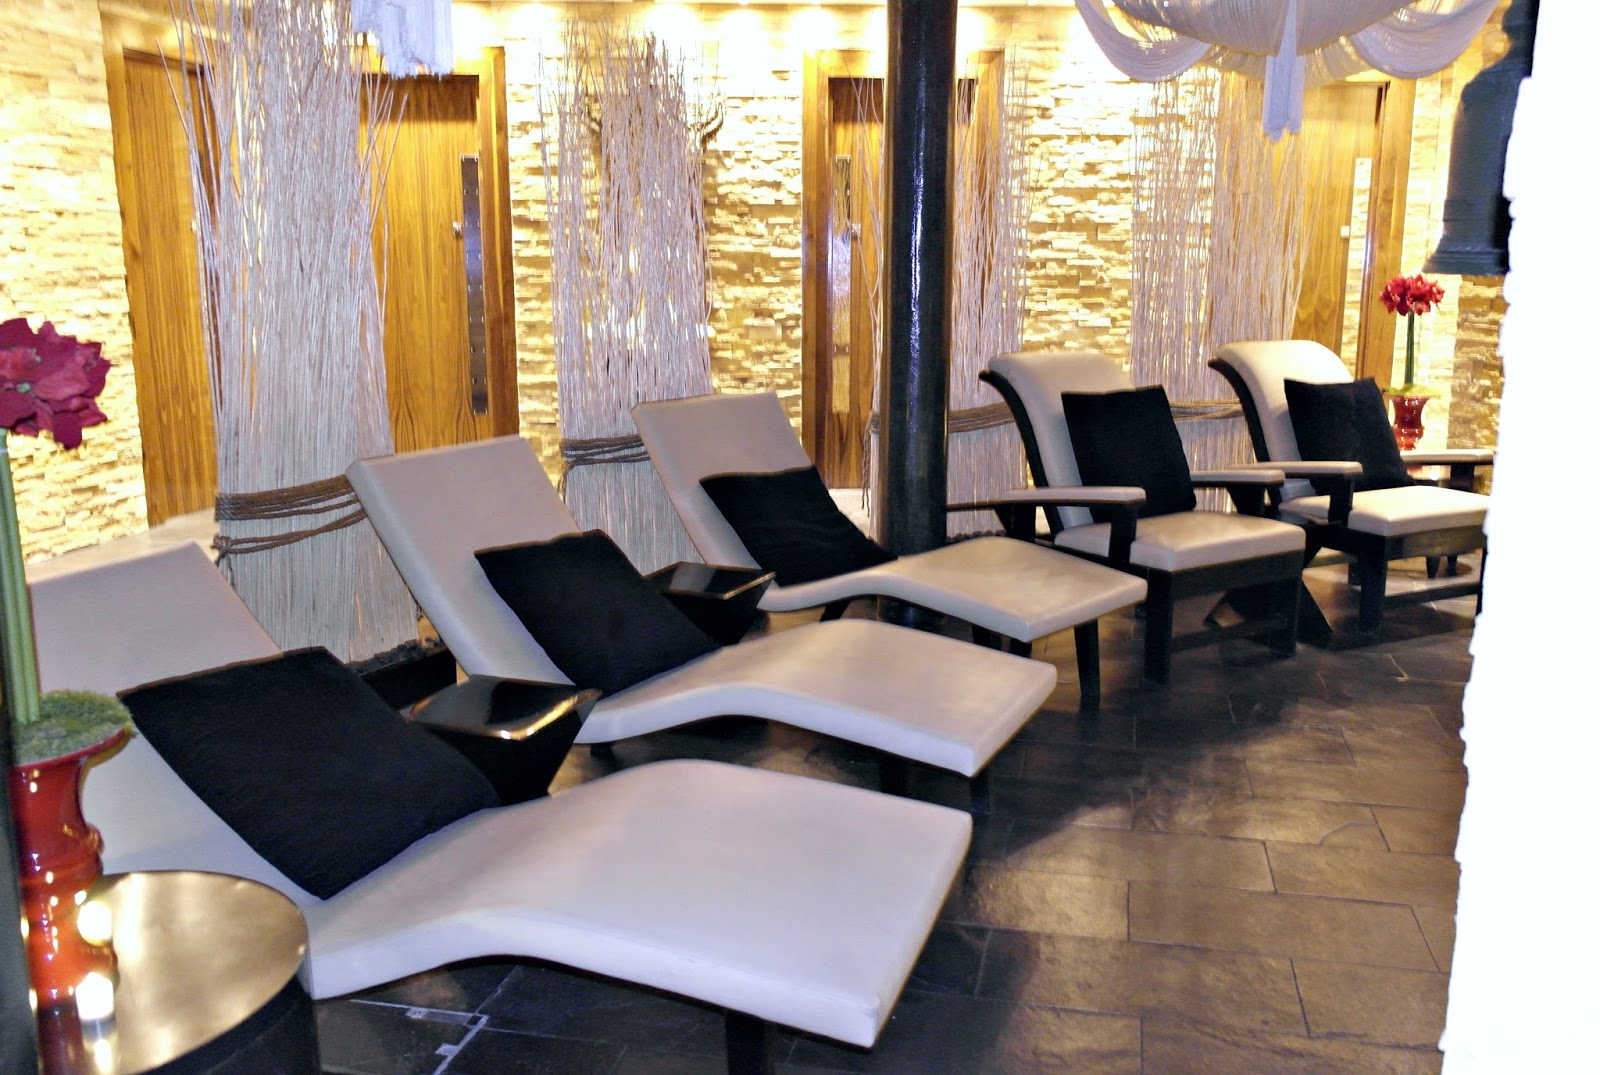 Thai Square Spa, London, review, chill out area, loungers